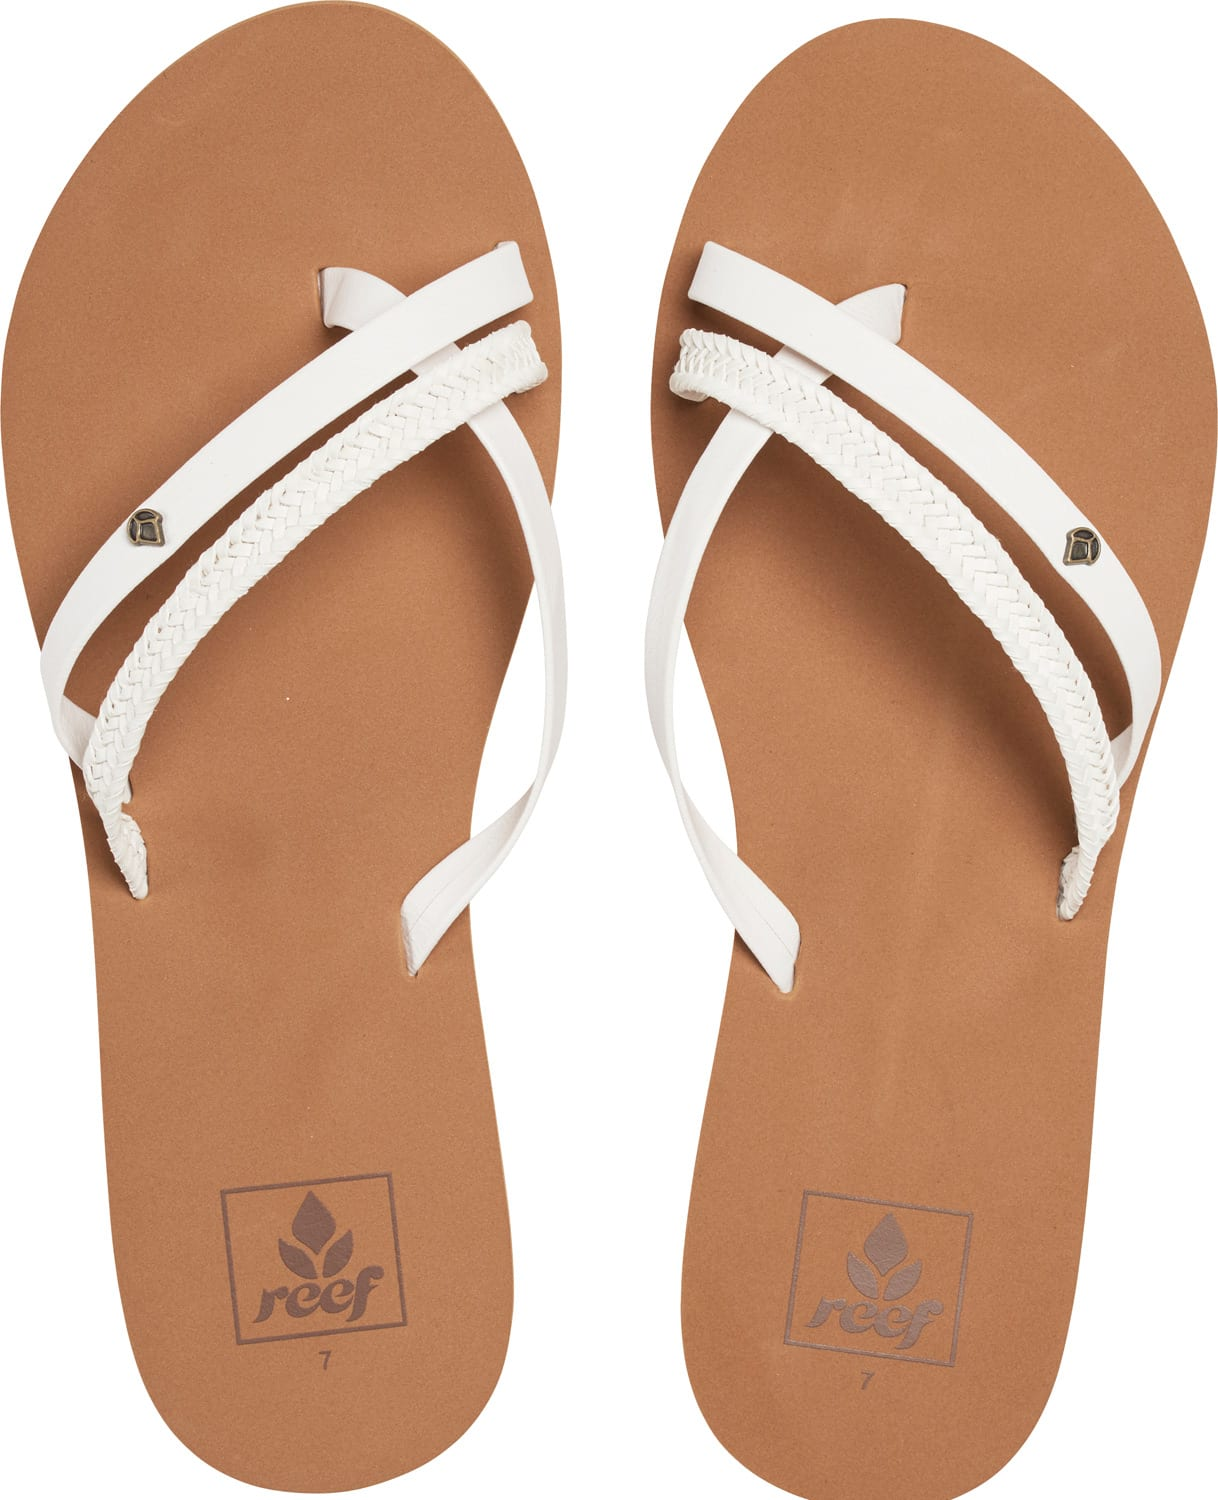 On Sale Reef O'Contrare LX Sandals - Womens up to 40% off